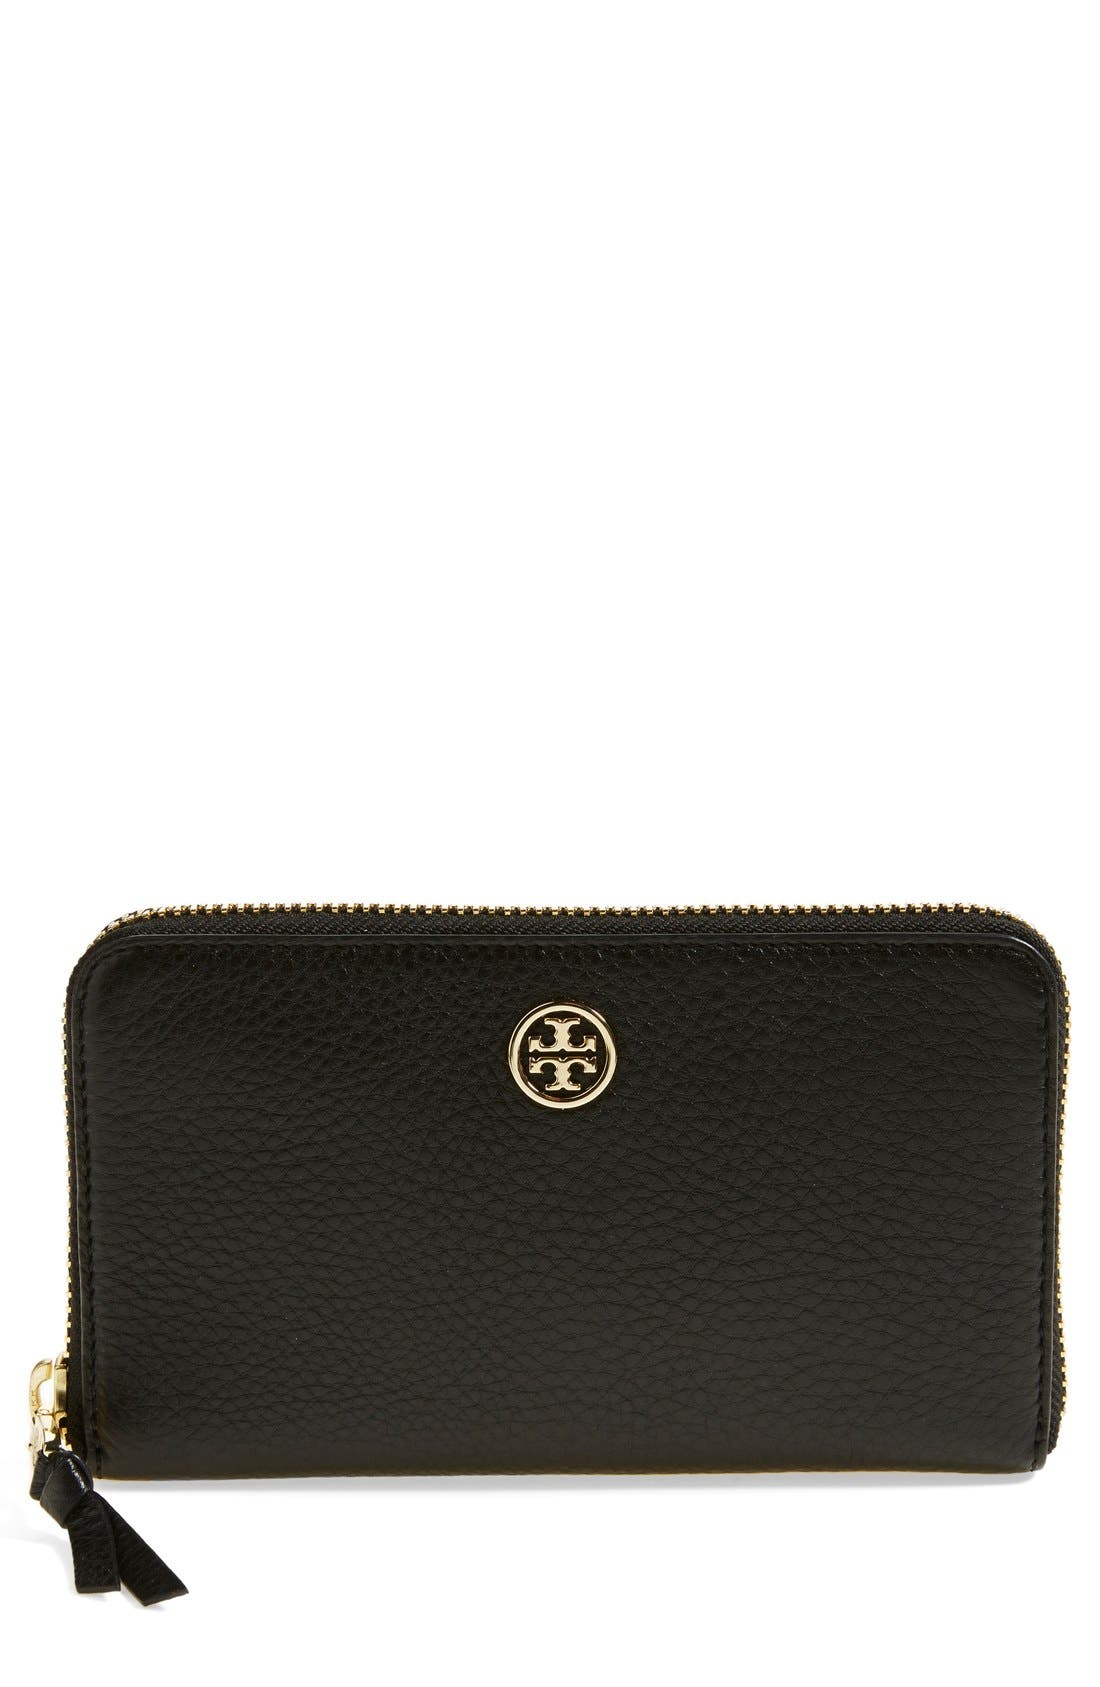 Alternate Image 1 Selected - Tory Burch 'Robinson' Continental Leather Wallet